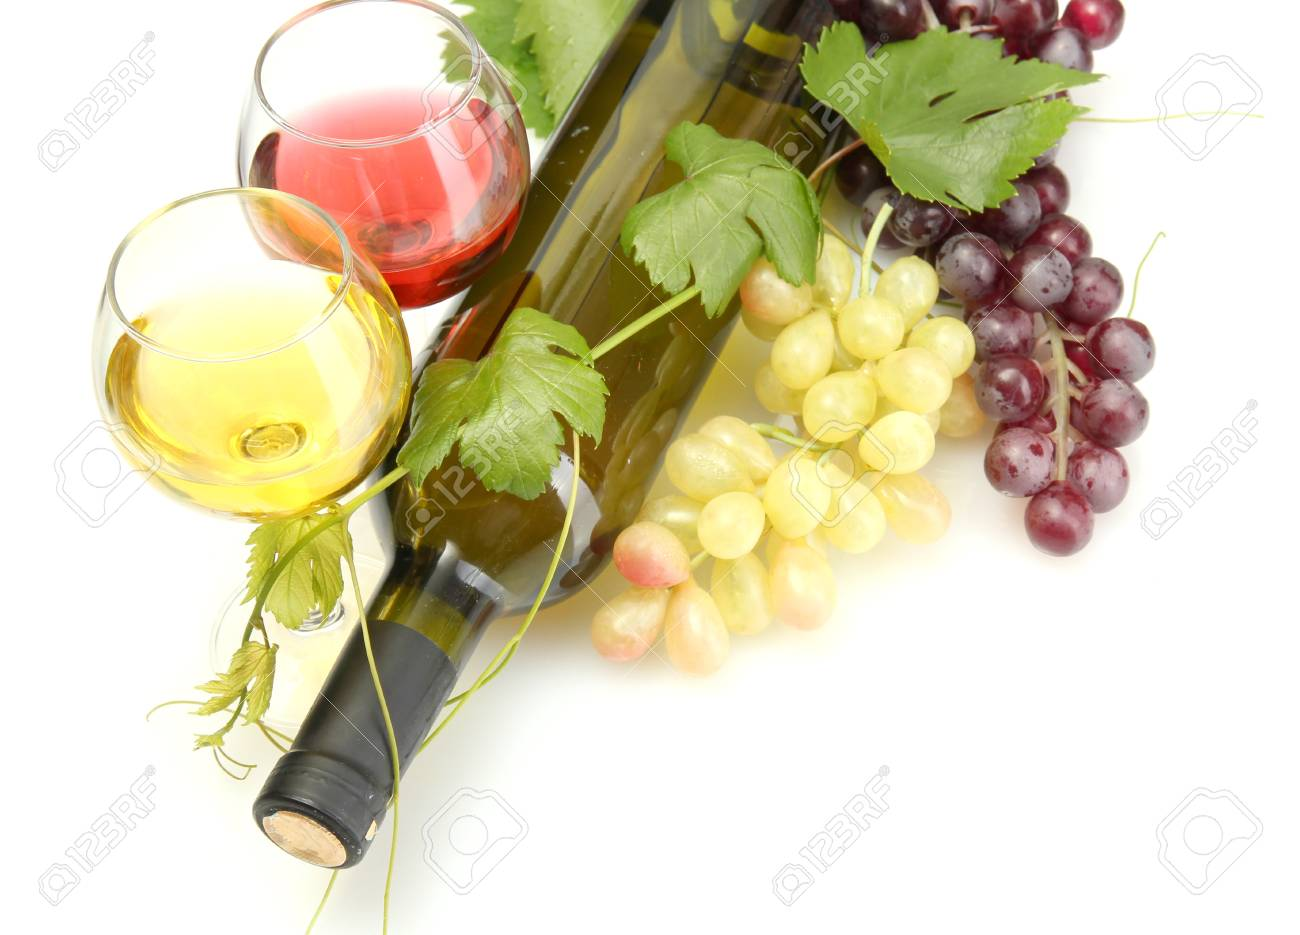 bottle and glasses of wine and ripe grapes isolated on white Stock Photo - 14077441